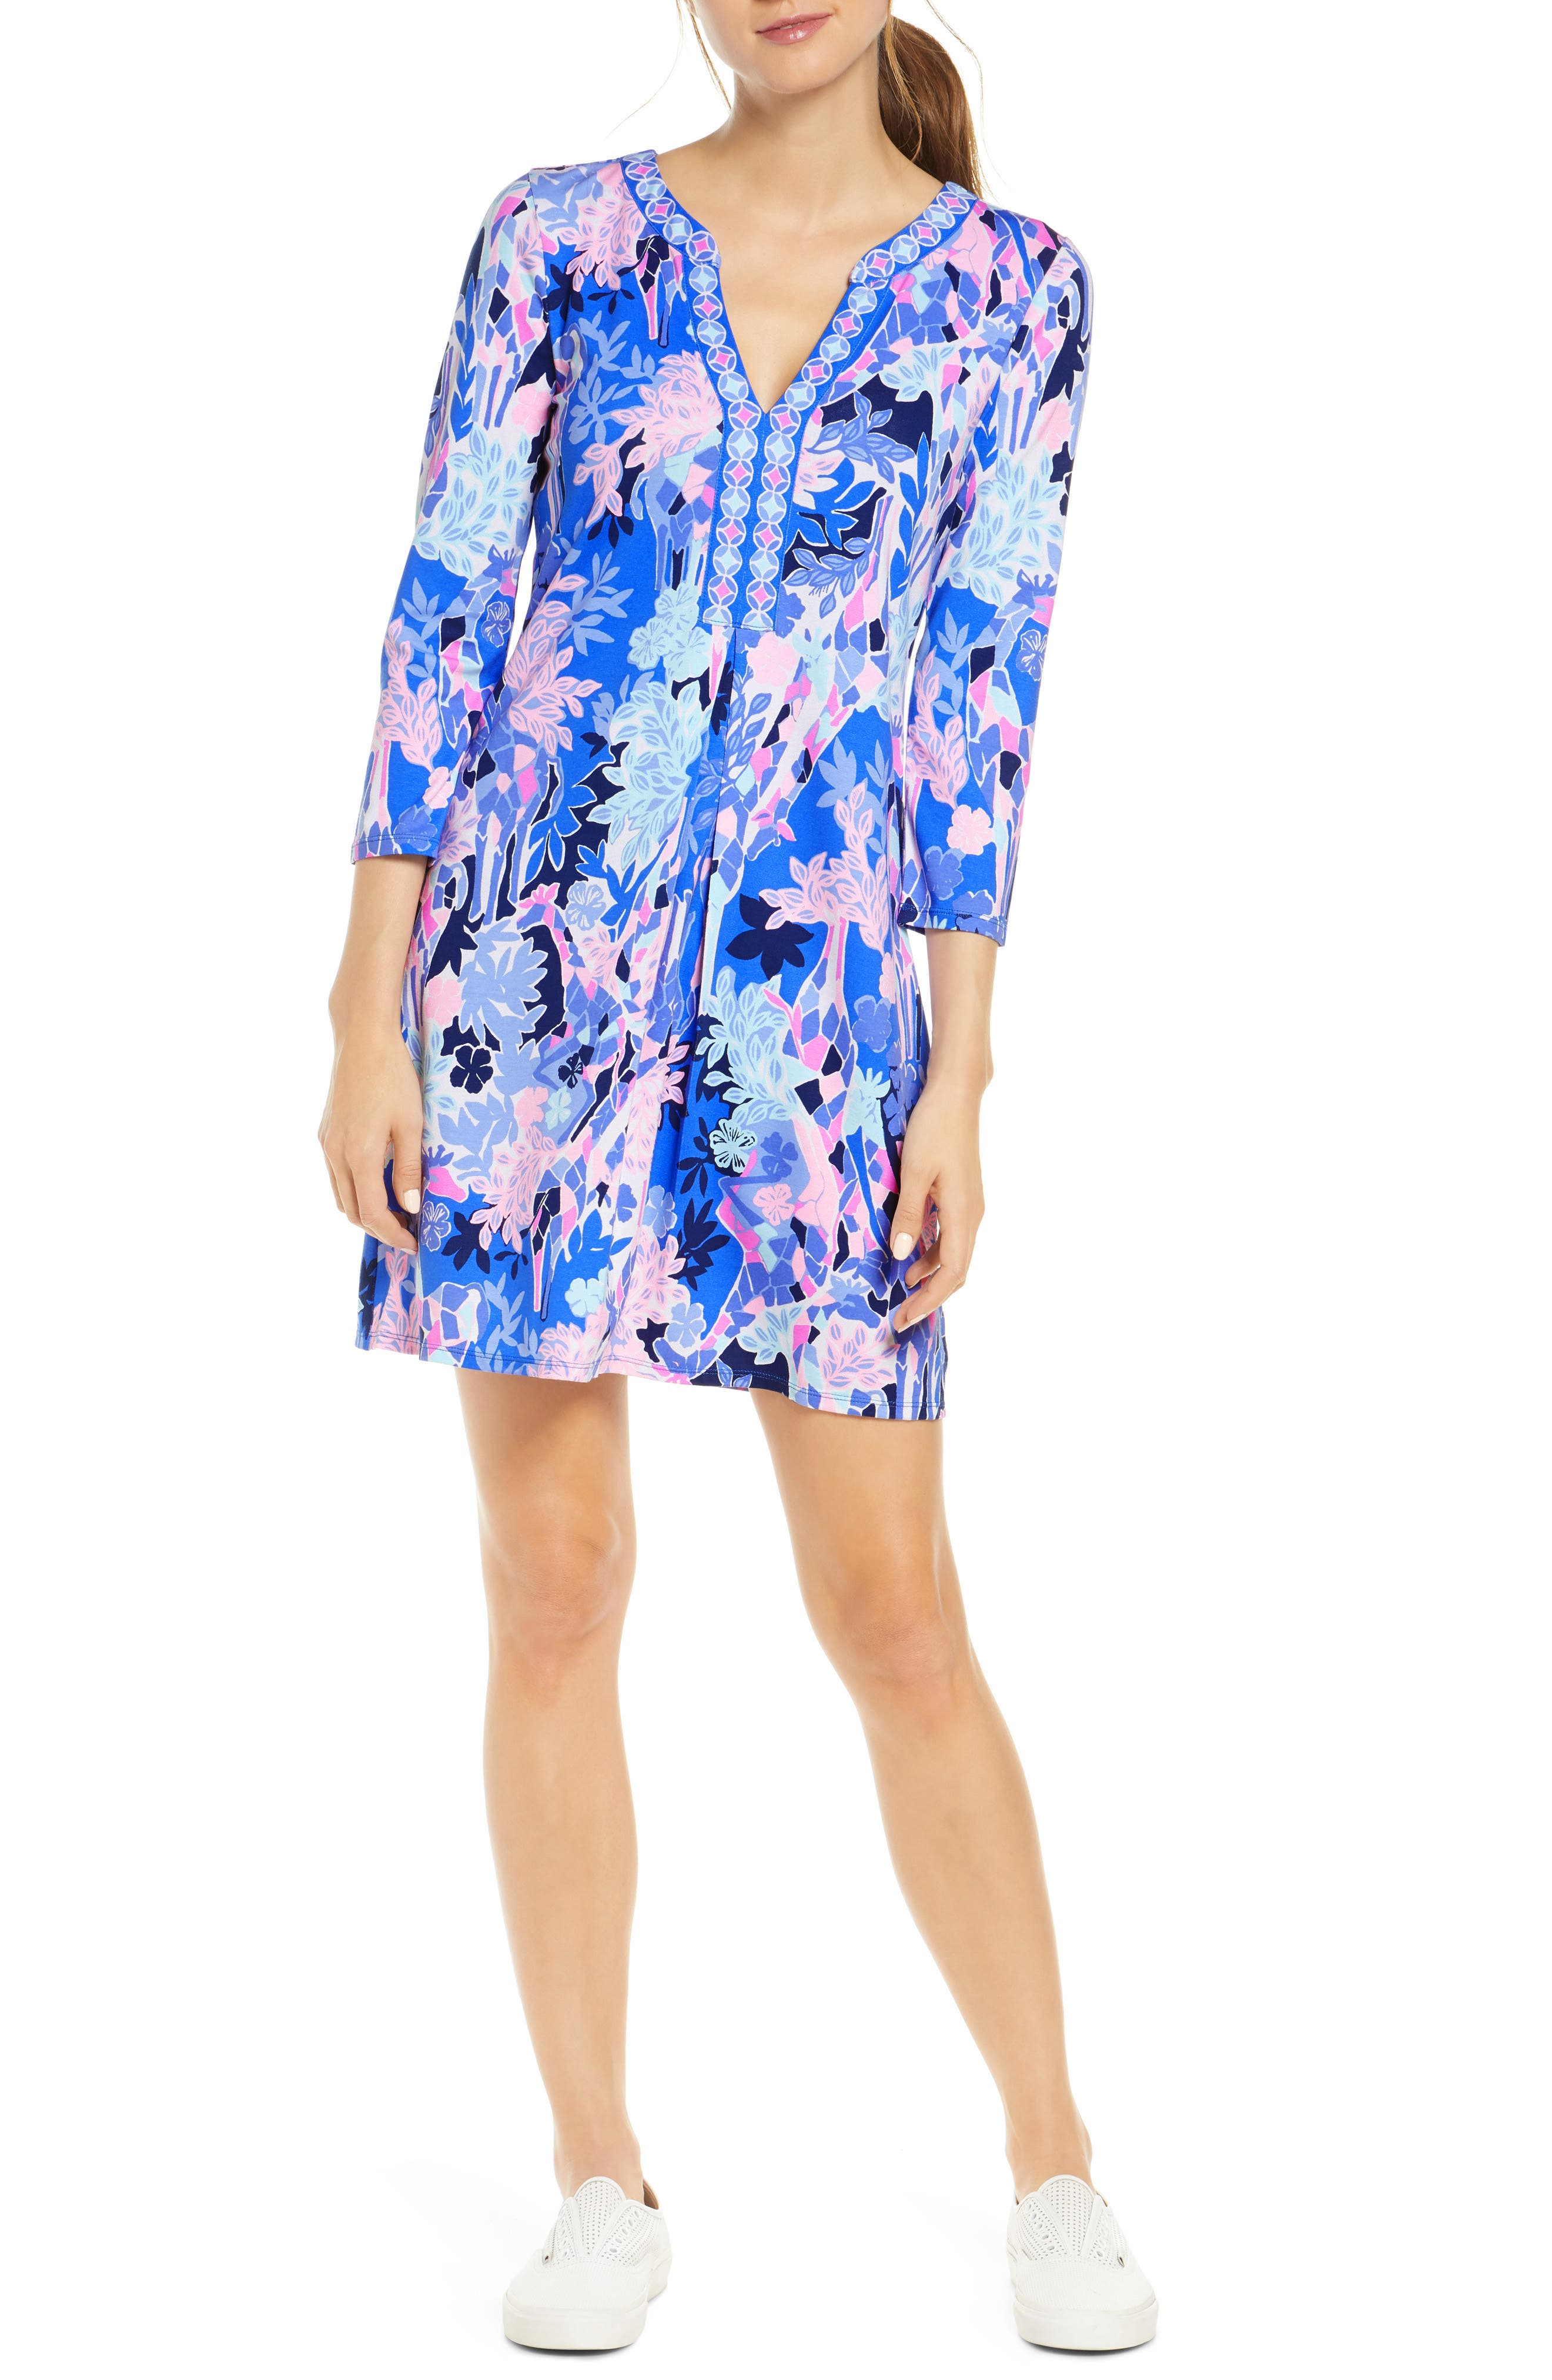 Get in the vacation mindset wearing this easy floral mini designed with a skirt that flows from the inverted pleat at the waist to the hem. Style Name: Lilly Pulitzer Melli Dress. Style Number: 5968493. Available in stores.